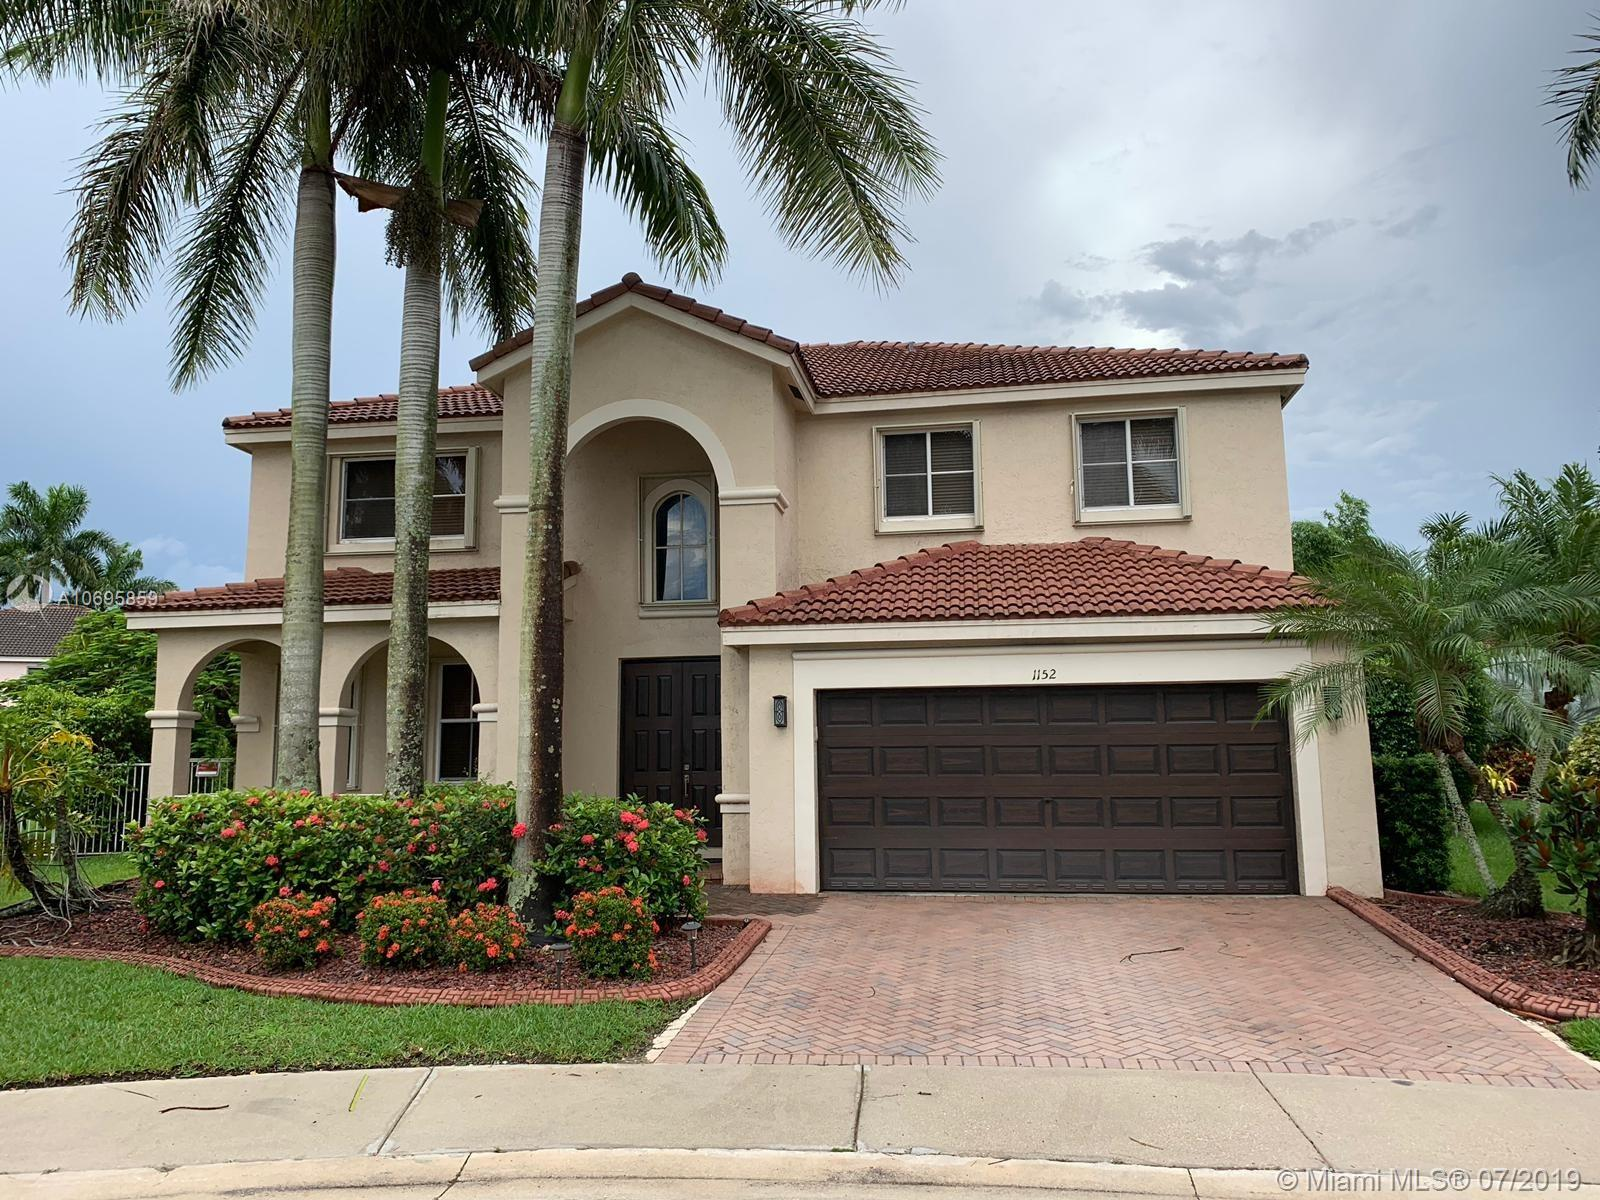 Weston - 1152 Chenille Cir, Weston, FL 33327